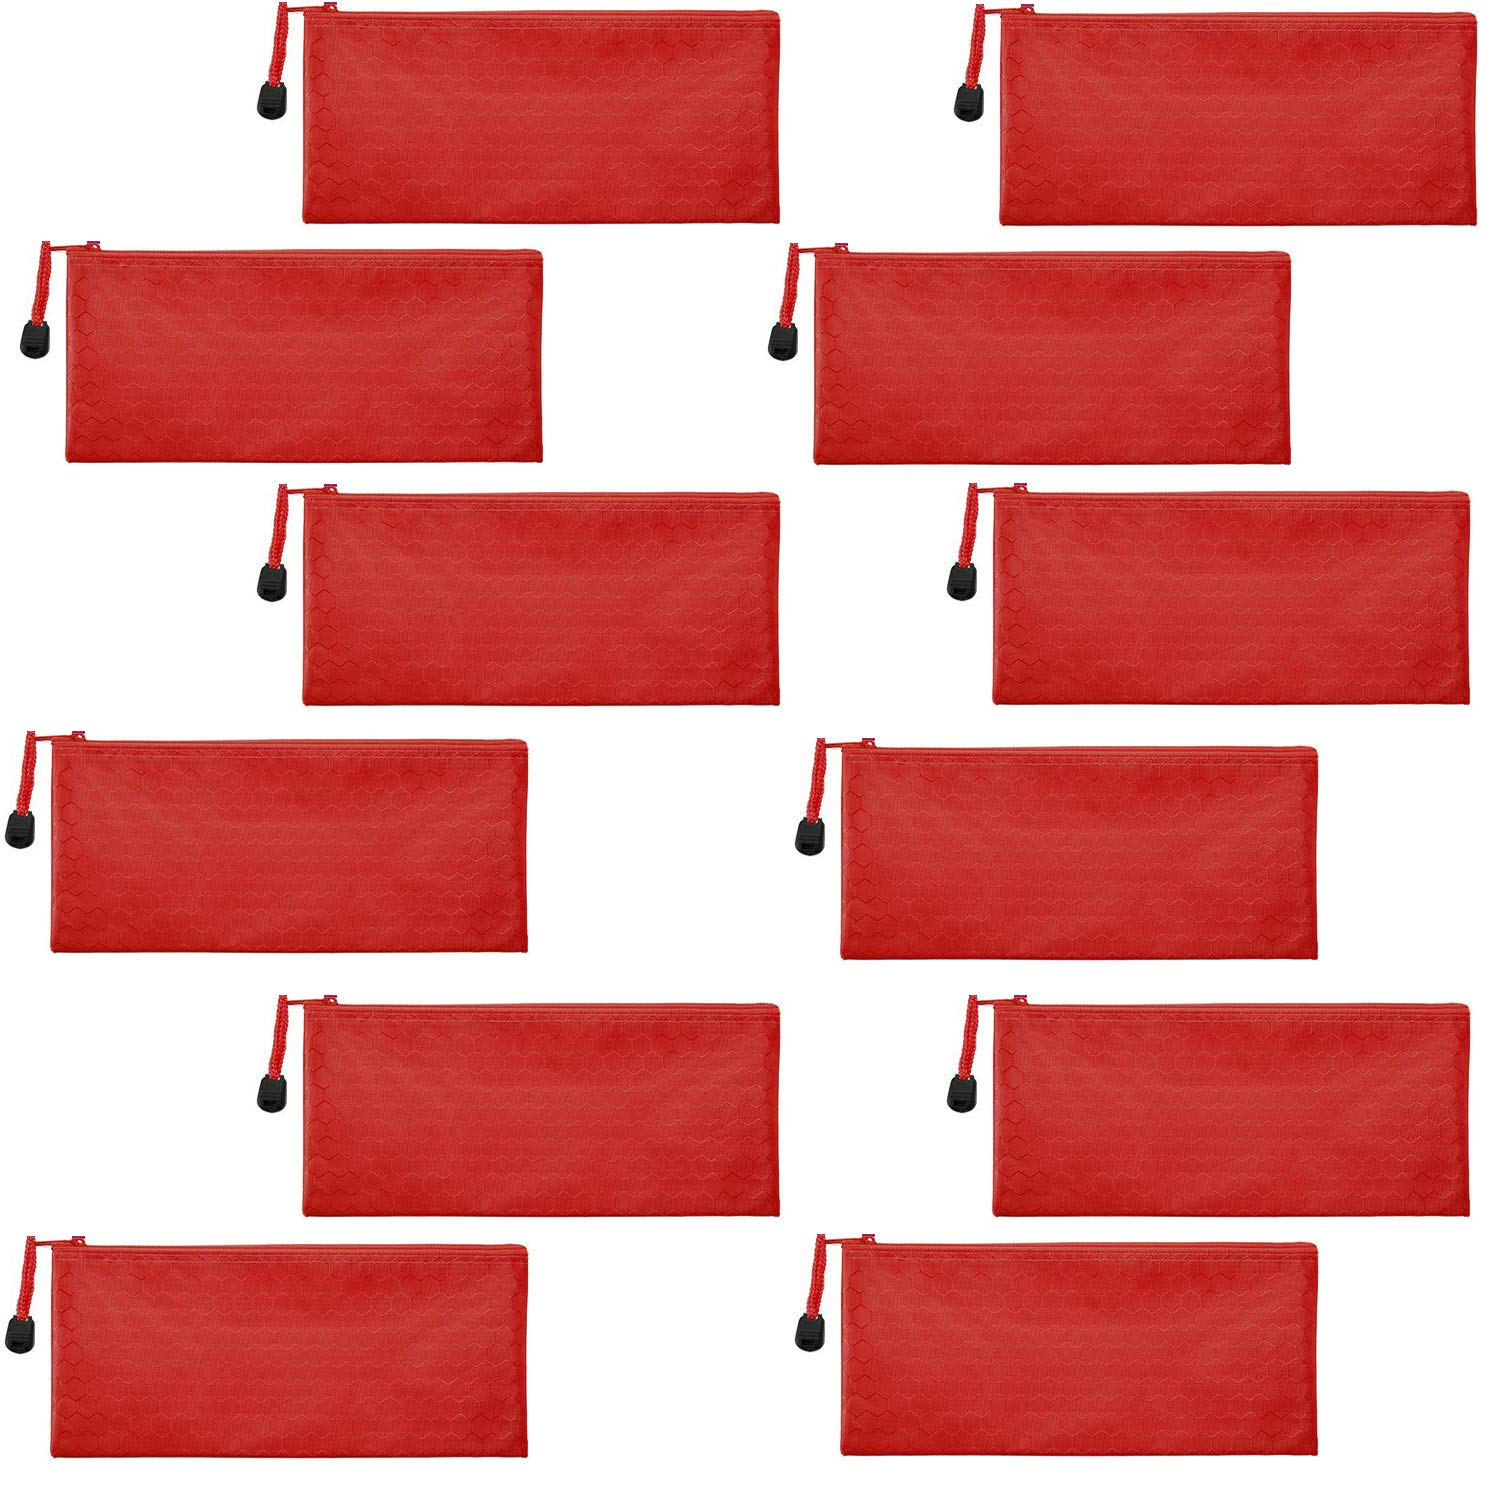 Sailing-go 12 Pieces Red Zipper Waterproof Bag Pencil Pouch for Cosmetic Makeup Bills Office Supplies Travel Accessories and Daily Household Supplies